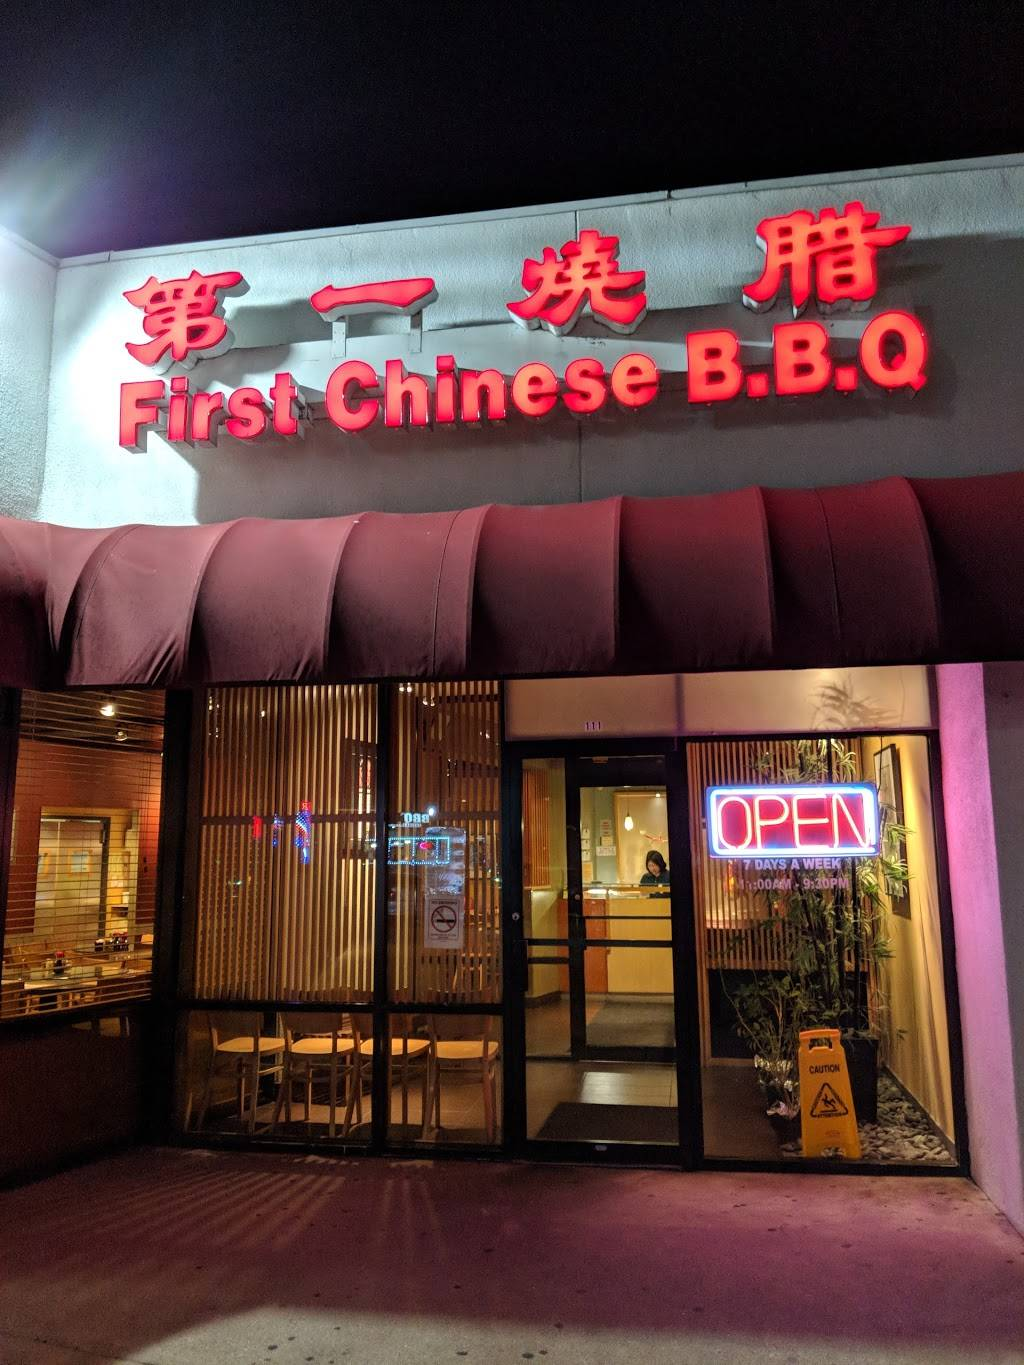 First Chinese B-B-Q | restaurant | 111 S Greenville Ave, Richardson, TX 75081, USA | 9726808216 OR +1 972-680-8216